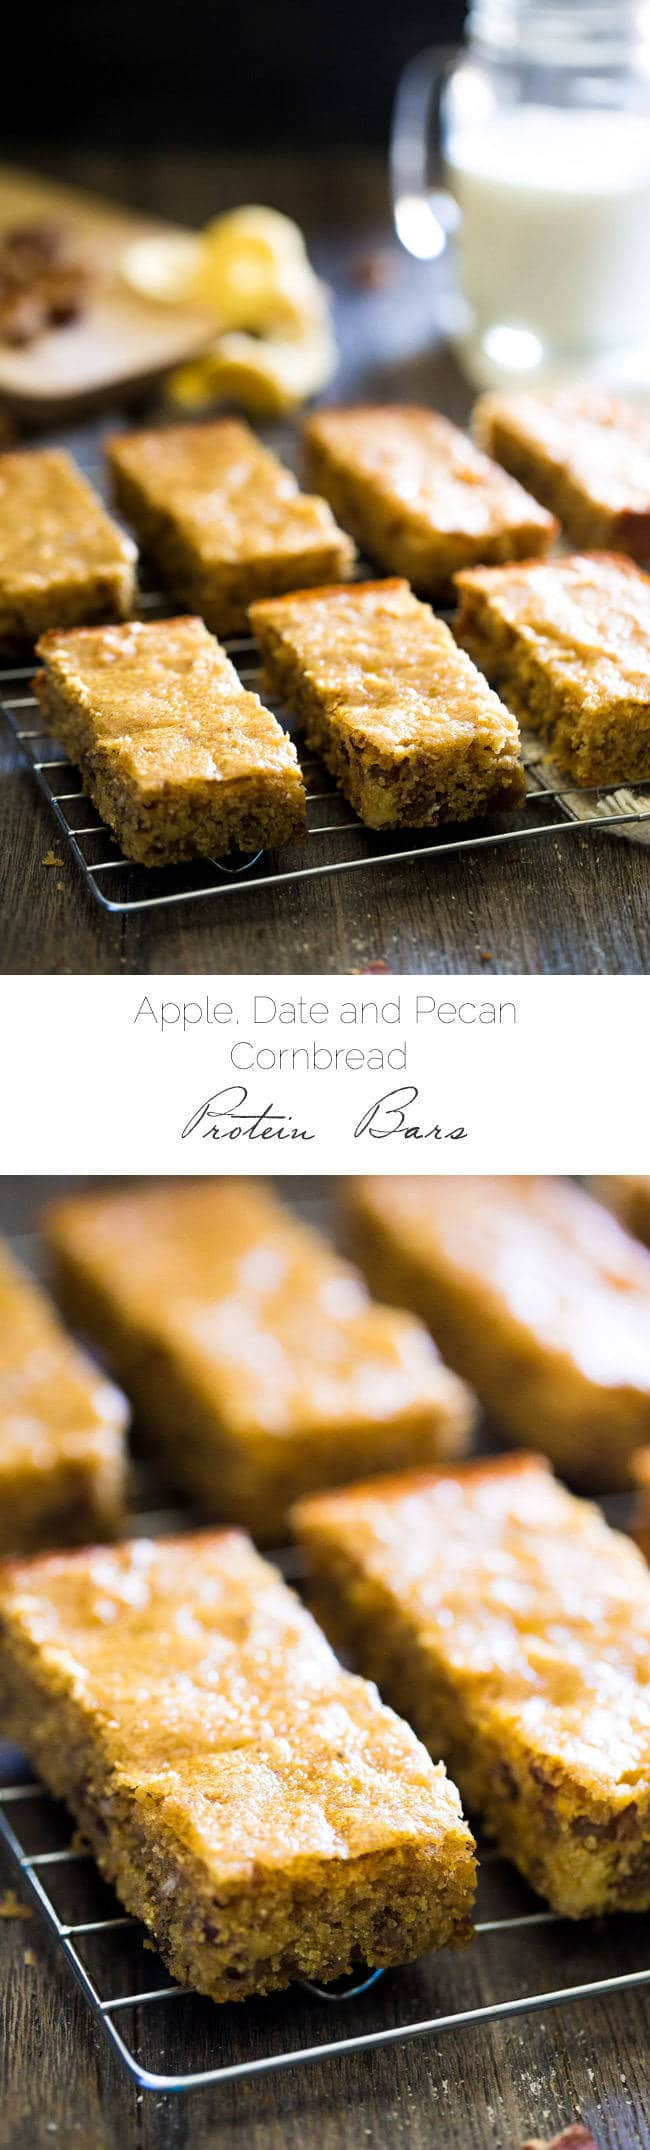 Healthy Cornbread Protein Bars with Apples and Dates - All the taste of cornbread in a delicious, protein-packed, gluten free and naturally sweetened on-the-go snack! | Foodfaithfitness.com | #recipe